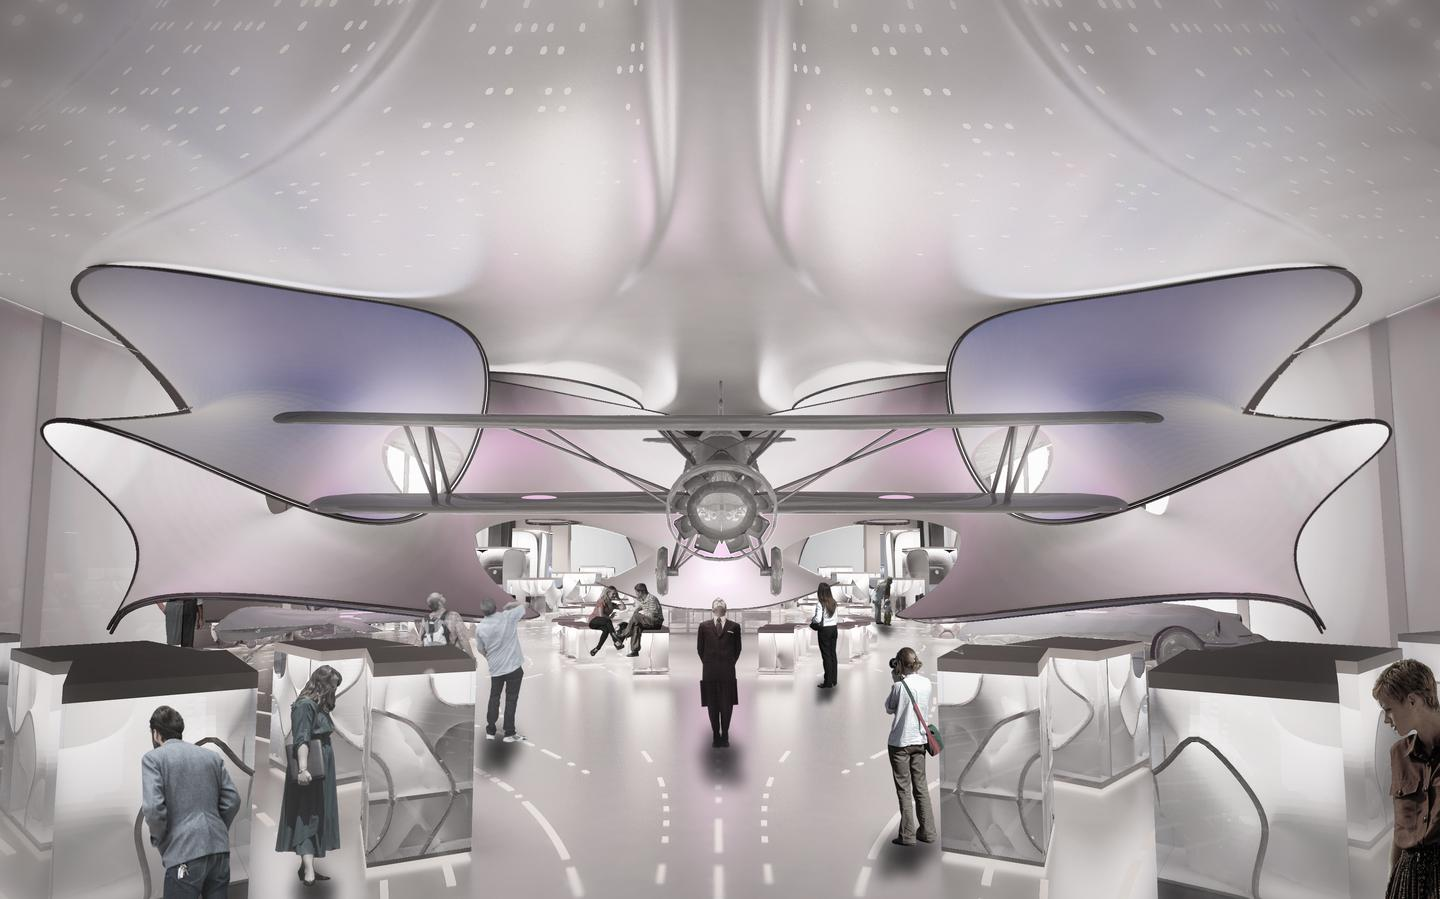 The David and Claudia Harding gallery is due to open in 2016 (Image: Zaha Hadid Architects)